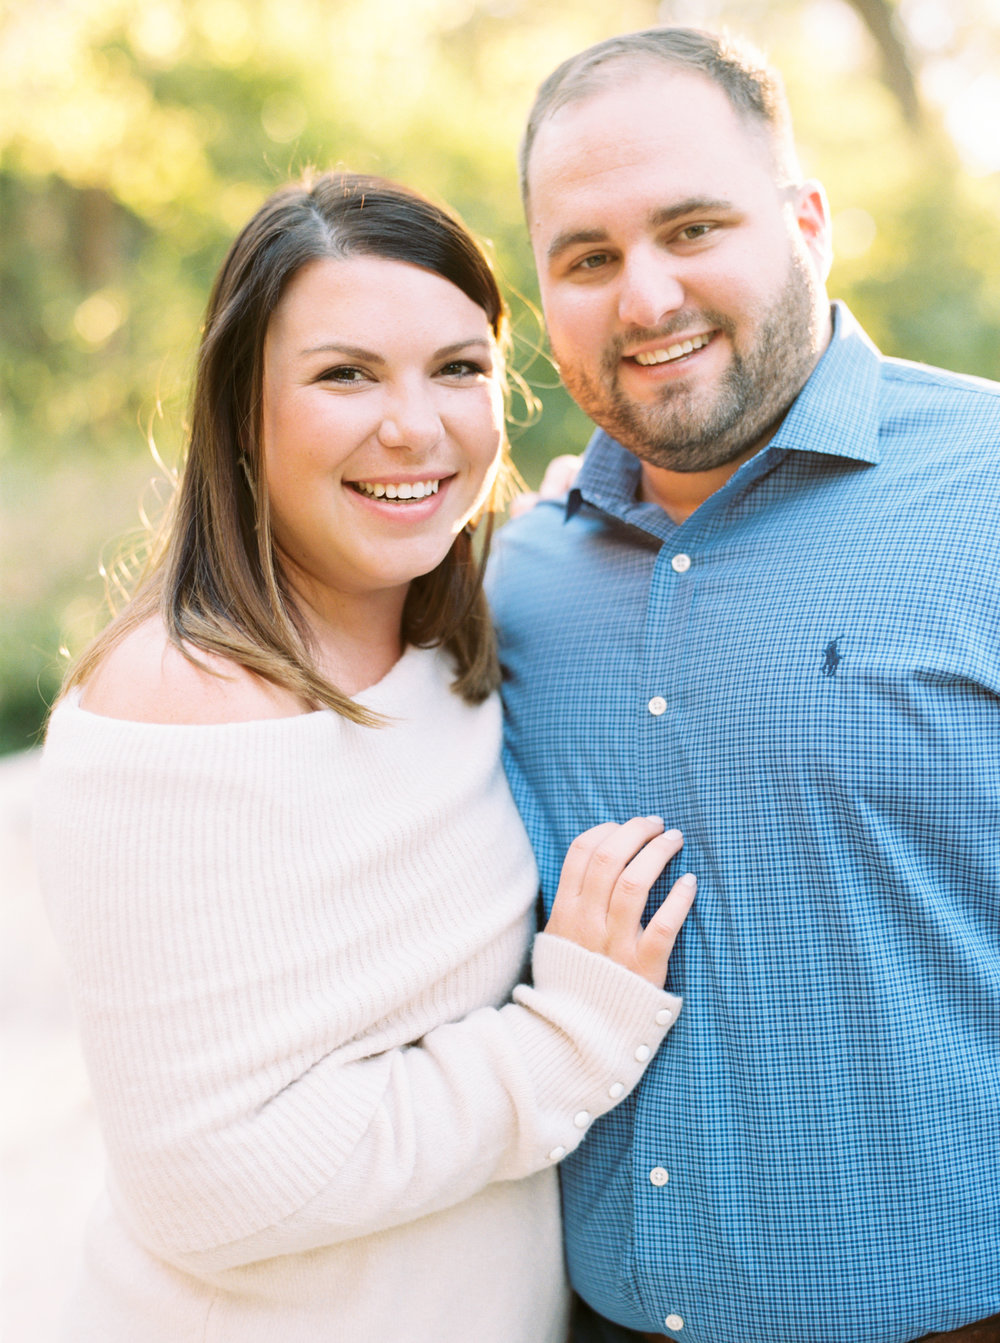 Engagement Session Outfits-196.jpg